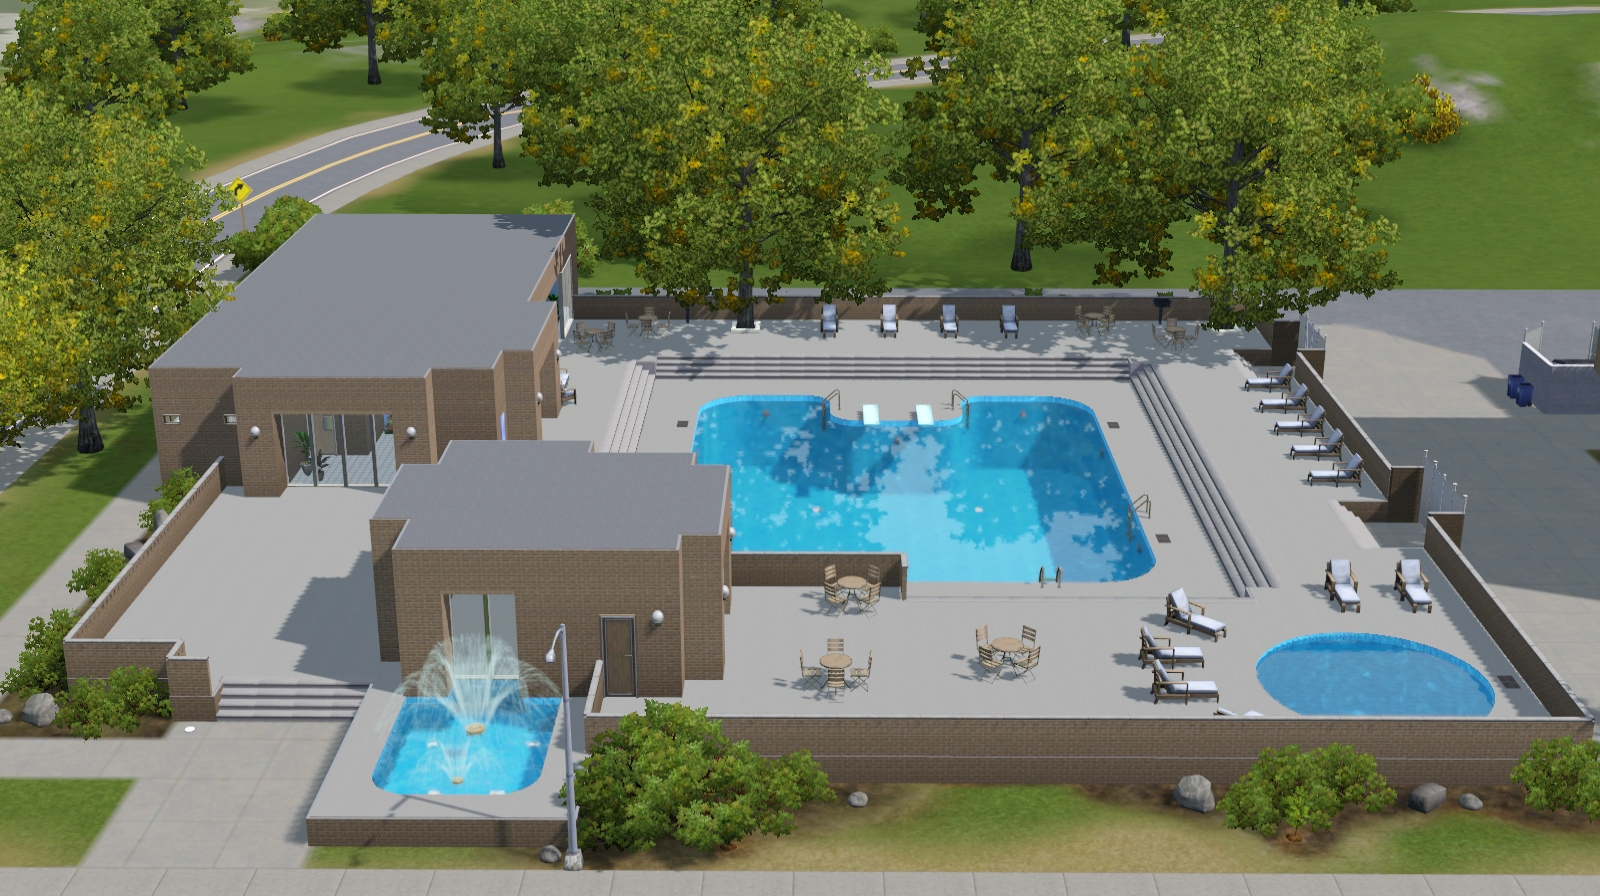 Sims 3 community lots compendium sims 3 pools for Pool design sims 3